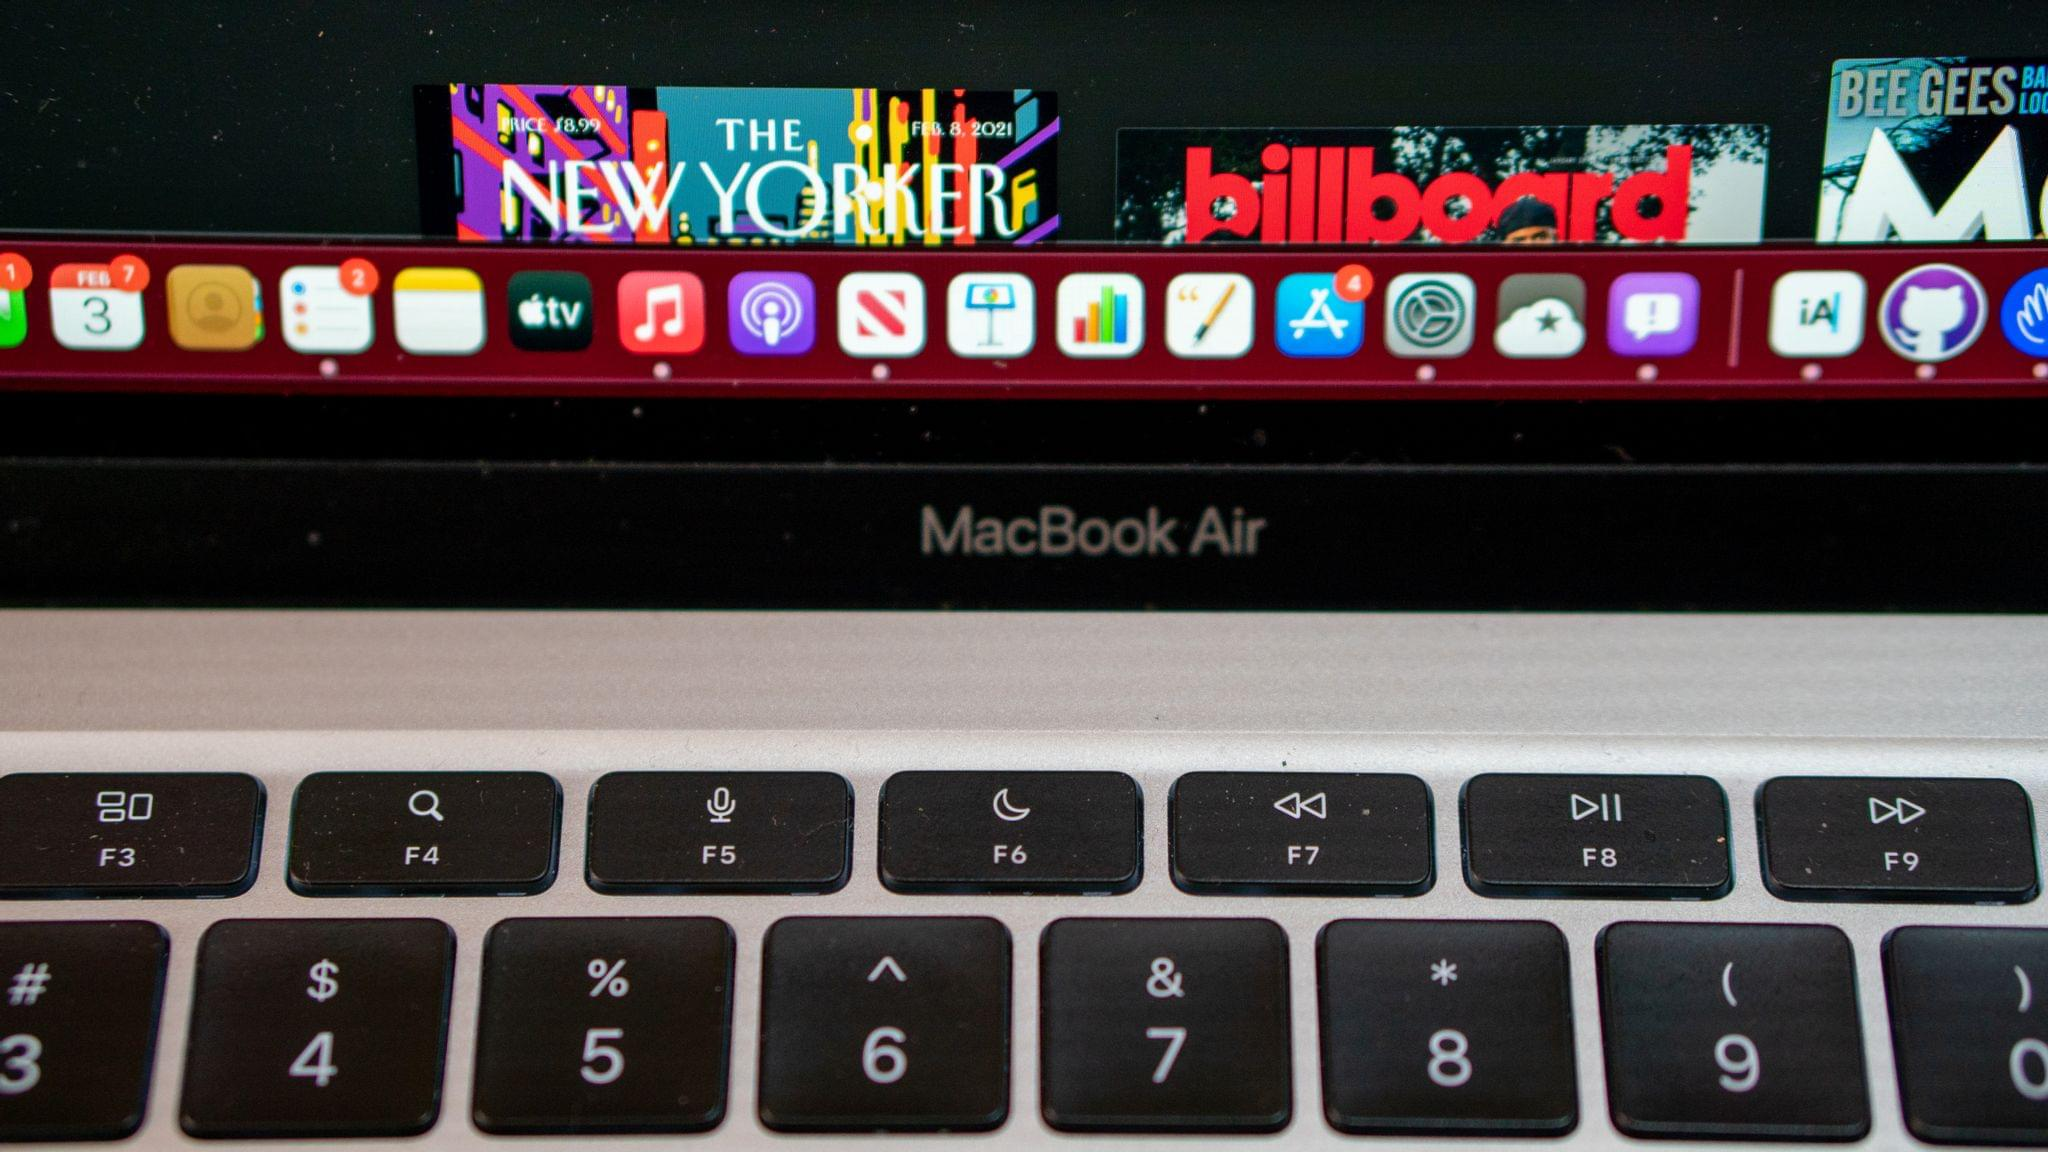 The Air adds Spotlight, Dictation and Siri, and Do Not Disturb function keys.